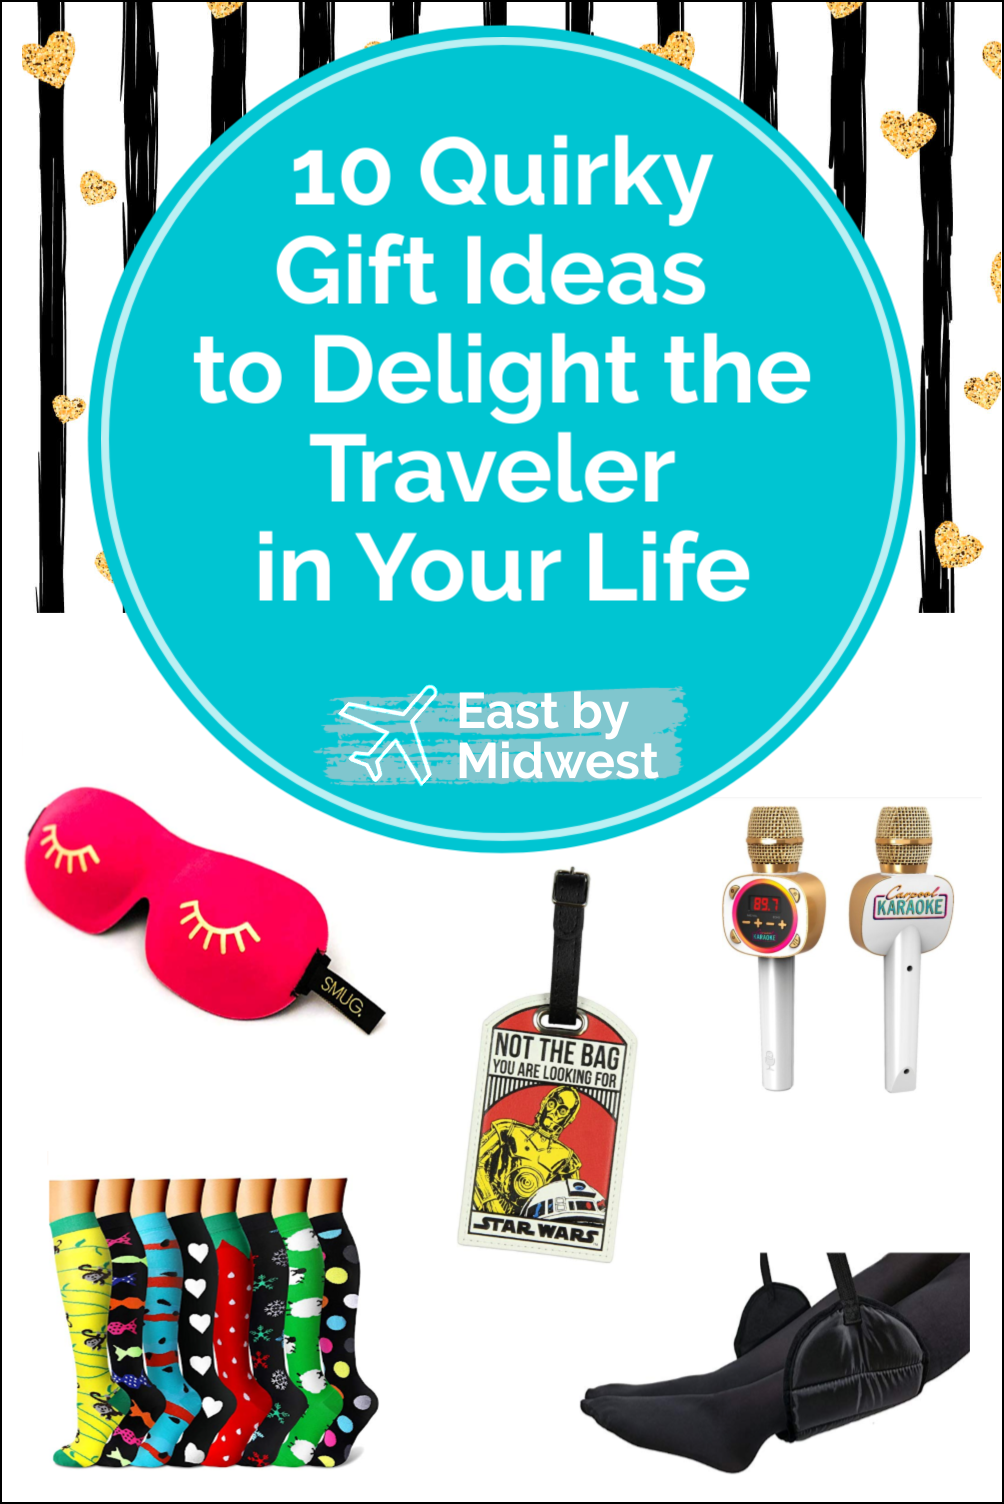 Want to entertain yourself and the traveler in your life? Give them a delightfully quirky gift! These quirky gift ideas for travelers will bring the laughs! #giftguide #giftideas #gifts #travelergifts #travelergiftideas #travelergiftguide #quirkygifts #stockingstuffers